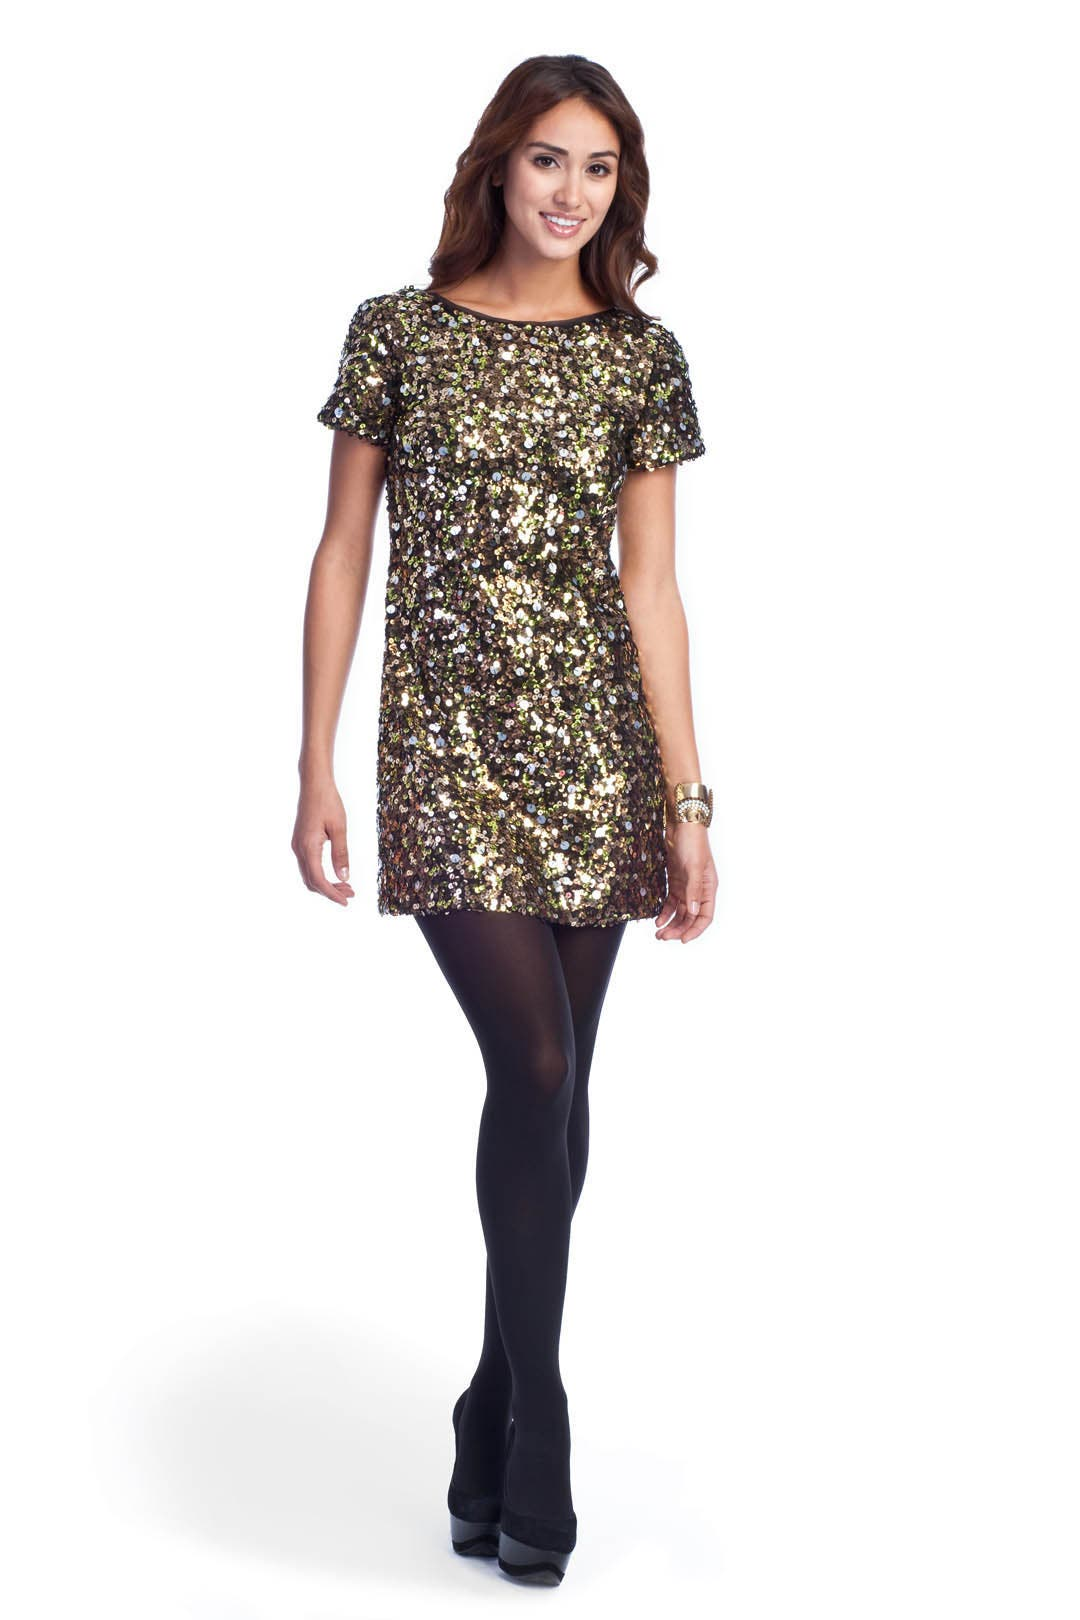 Confetti Sequins Dress by Tibi